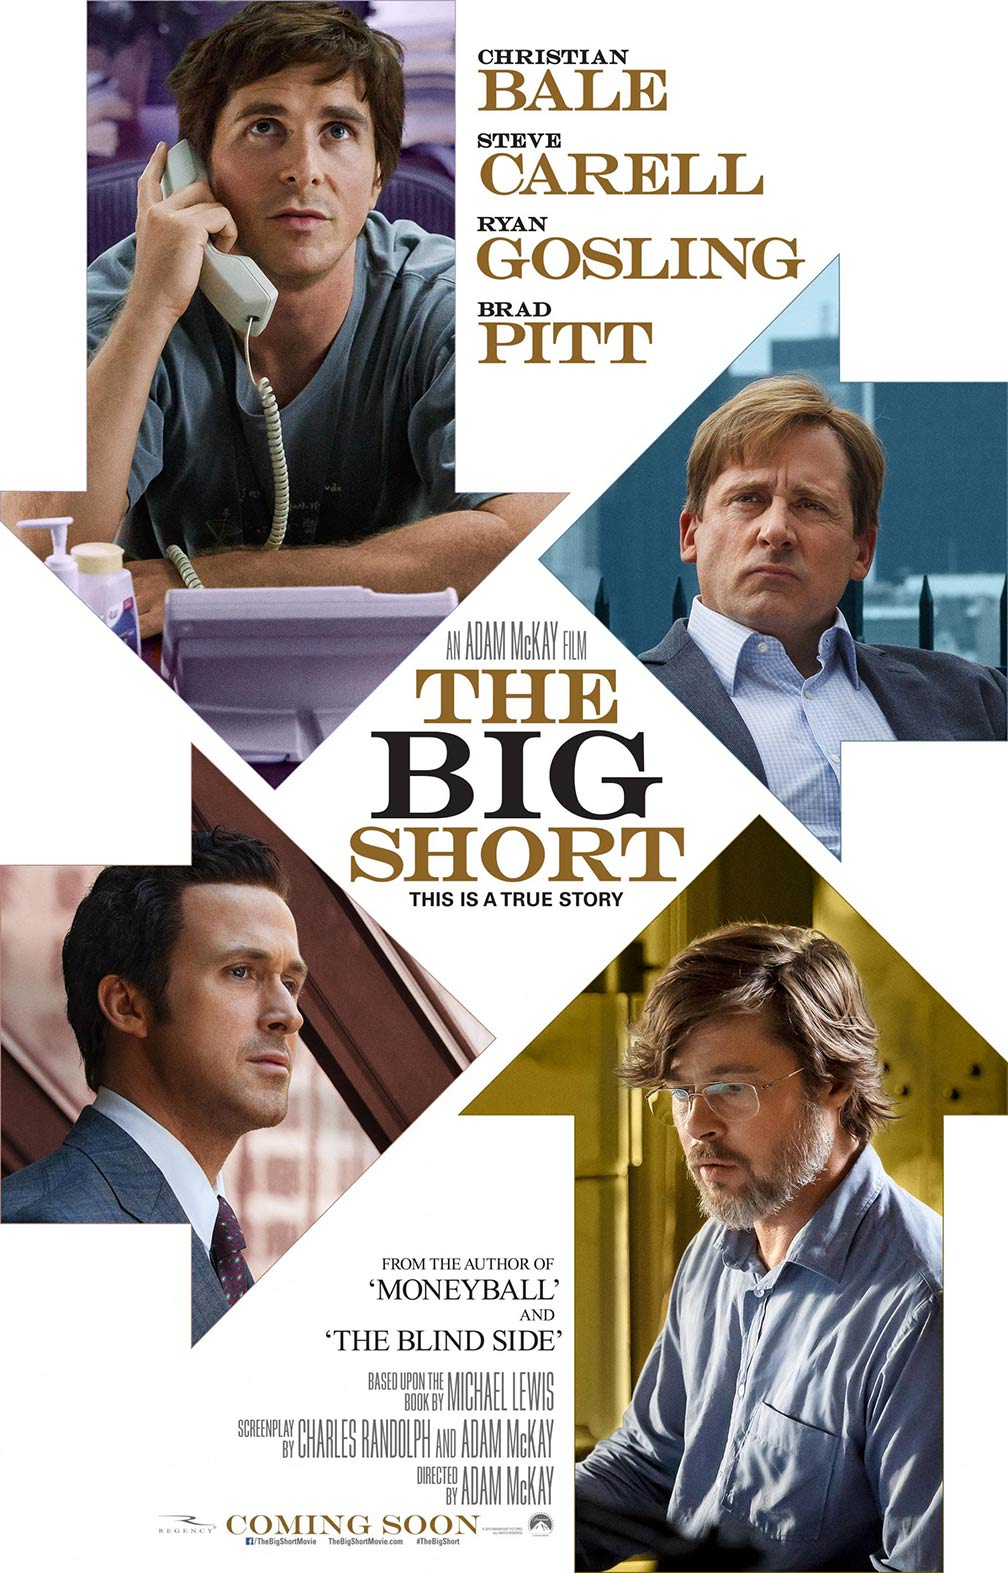 Lessons of The Big Short